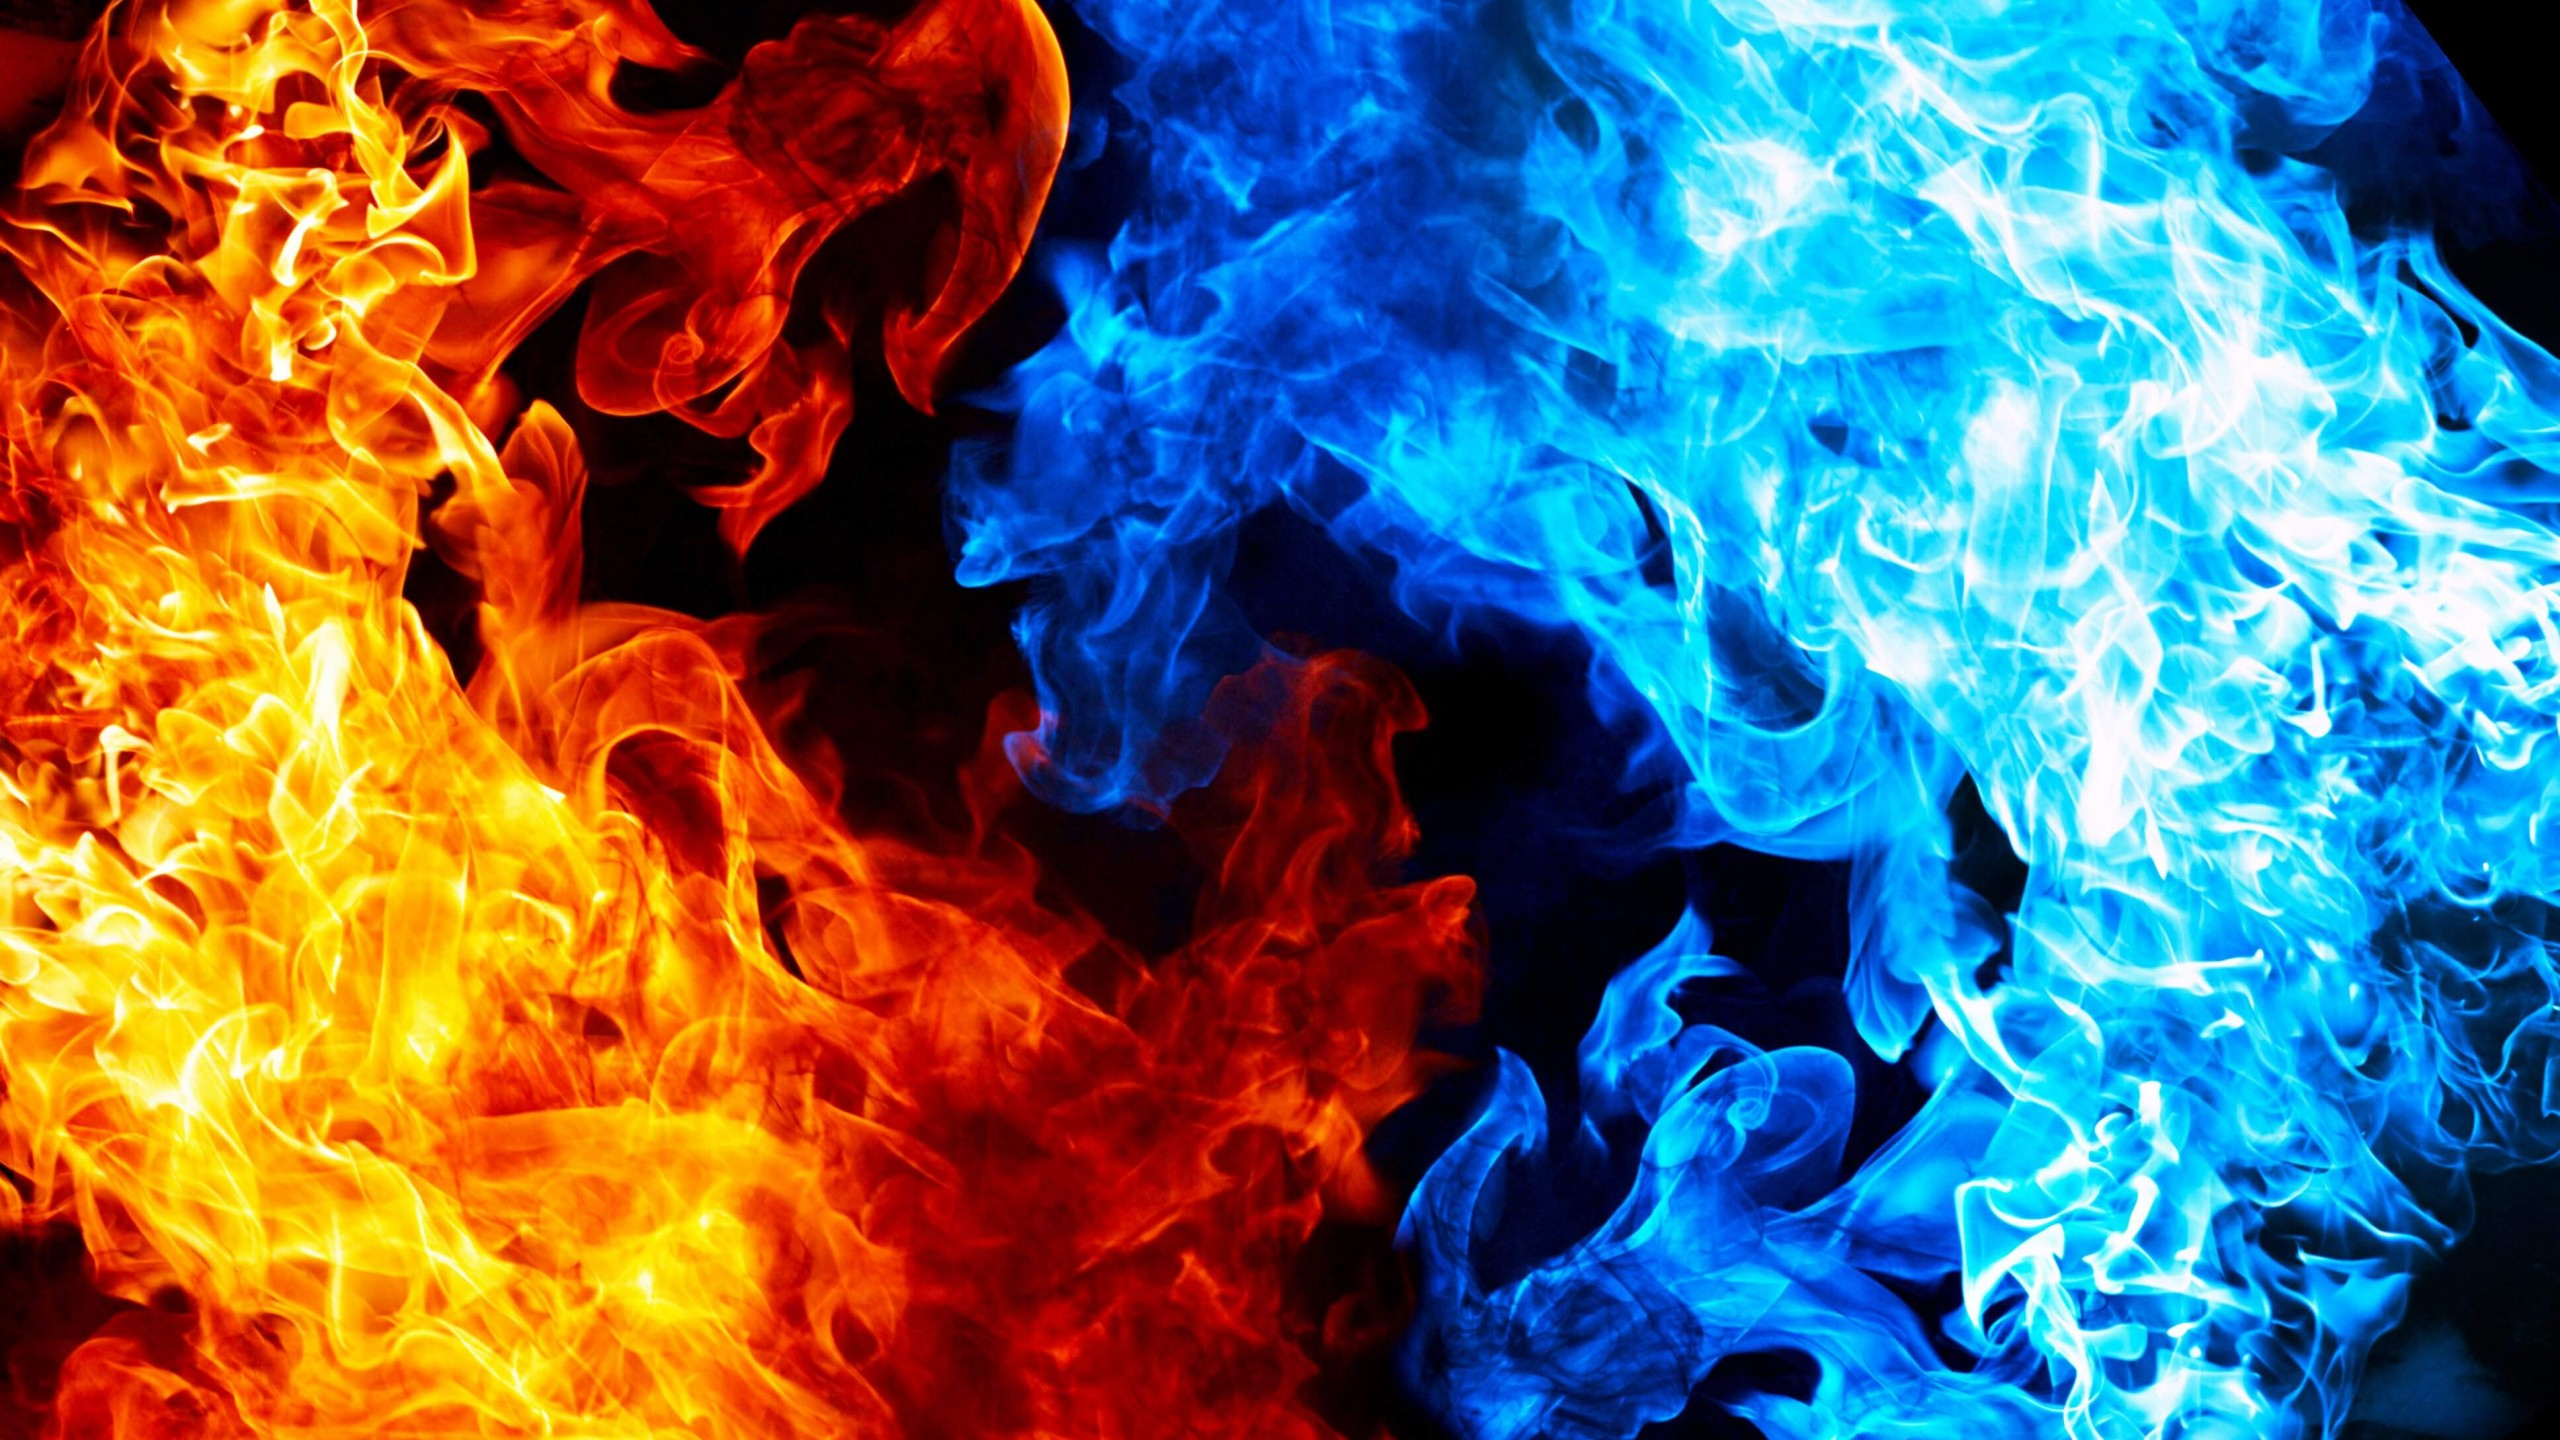 Free Download Blue And Red Fire Wallpaper For Desktop 2560 X 1440 2560x1440 For Your Desktop Mobile Tablet Explore 44 Blue And Red Fire Wallpaper Blue And White Wallpaper